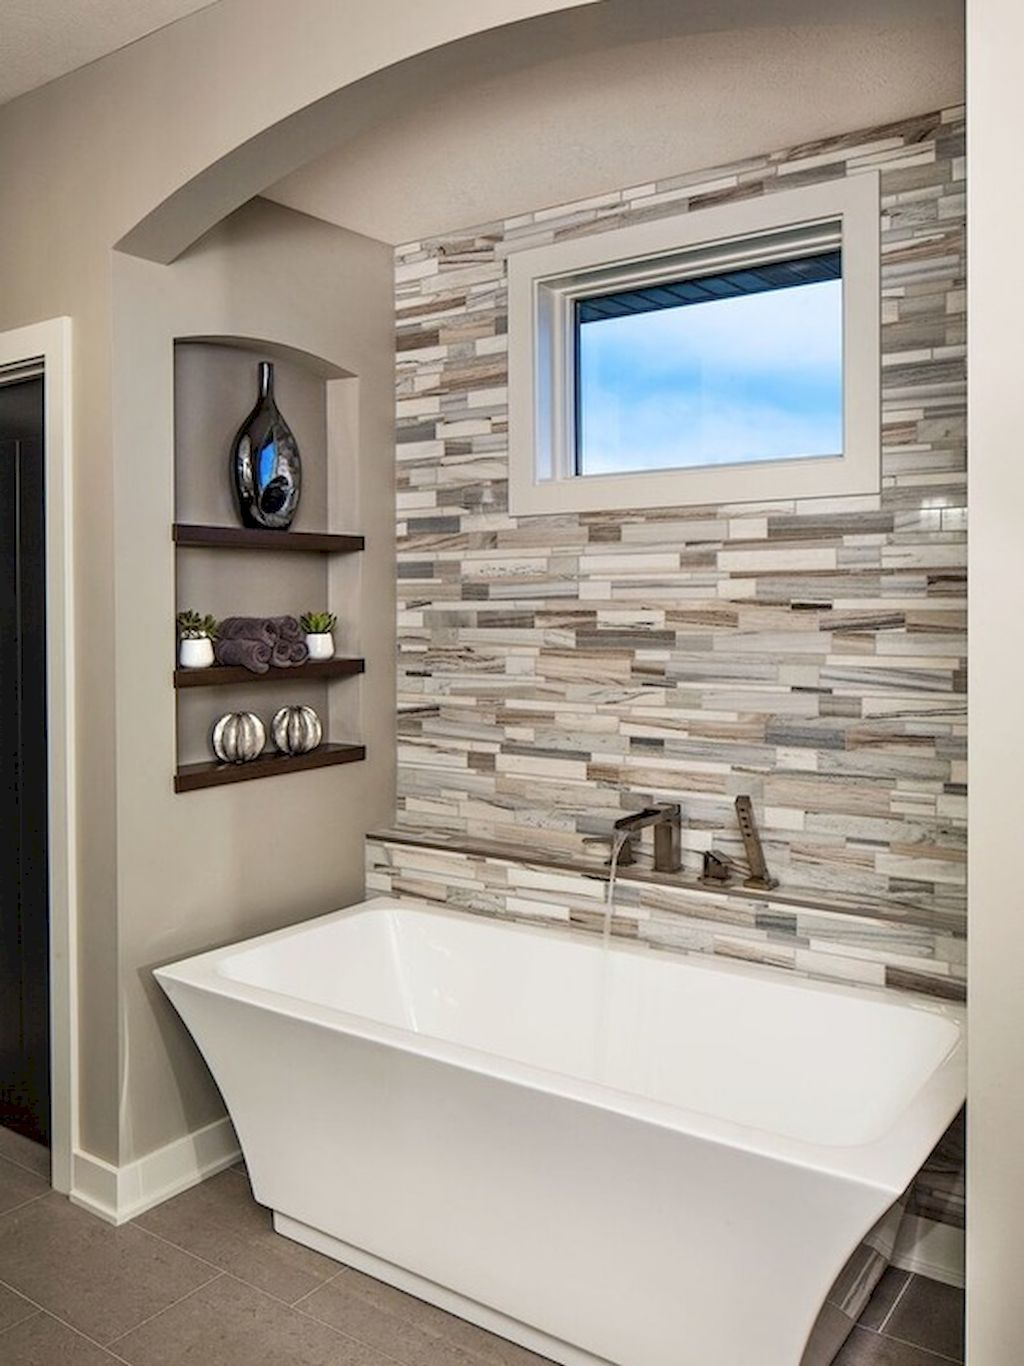 75 Fresh And Cool Master Bathroom Remodel Ideas On A Budget